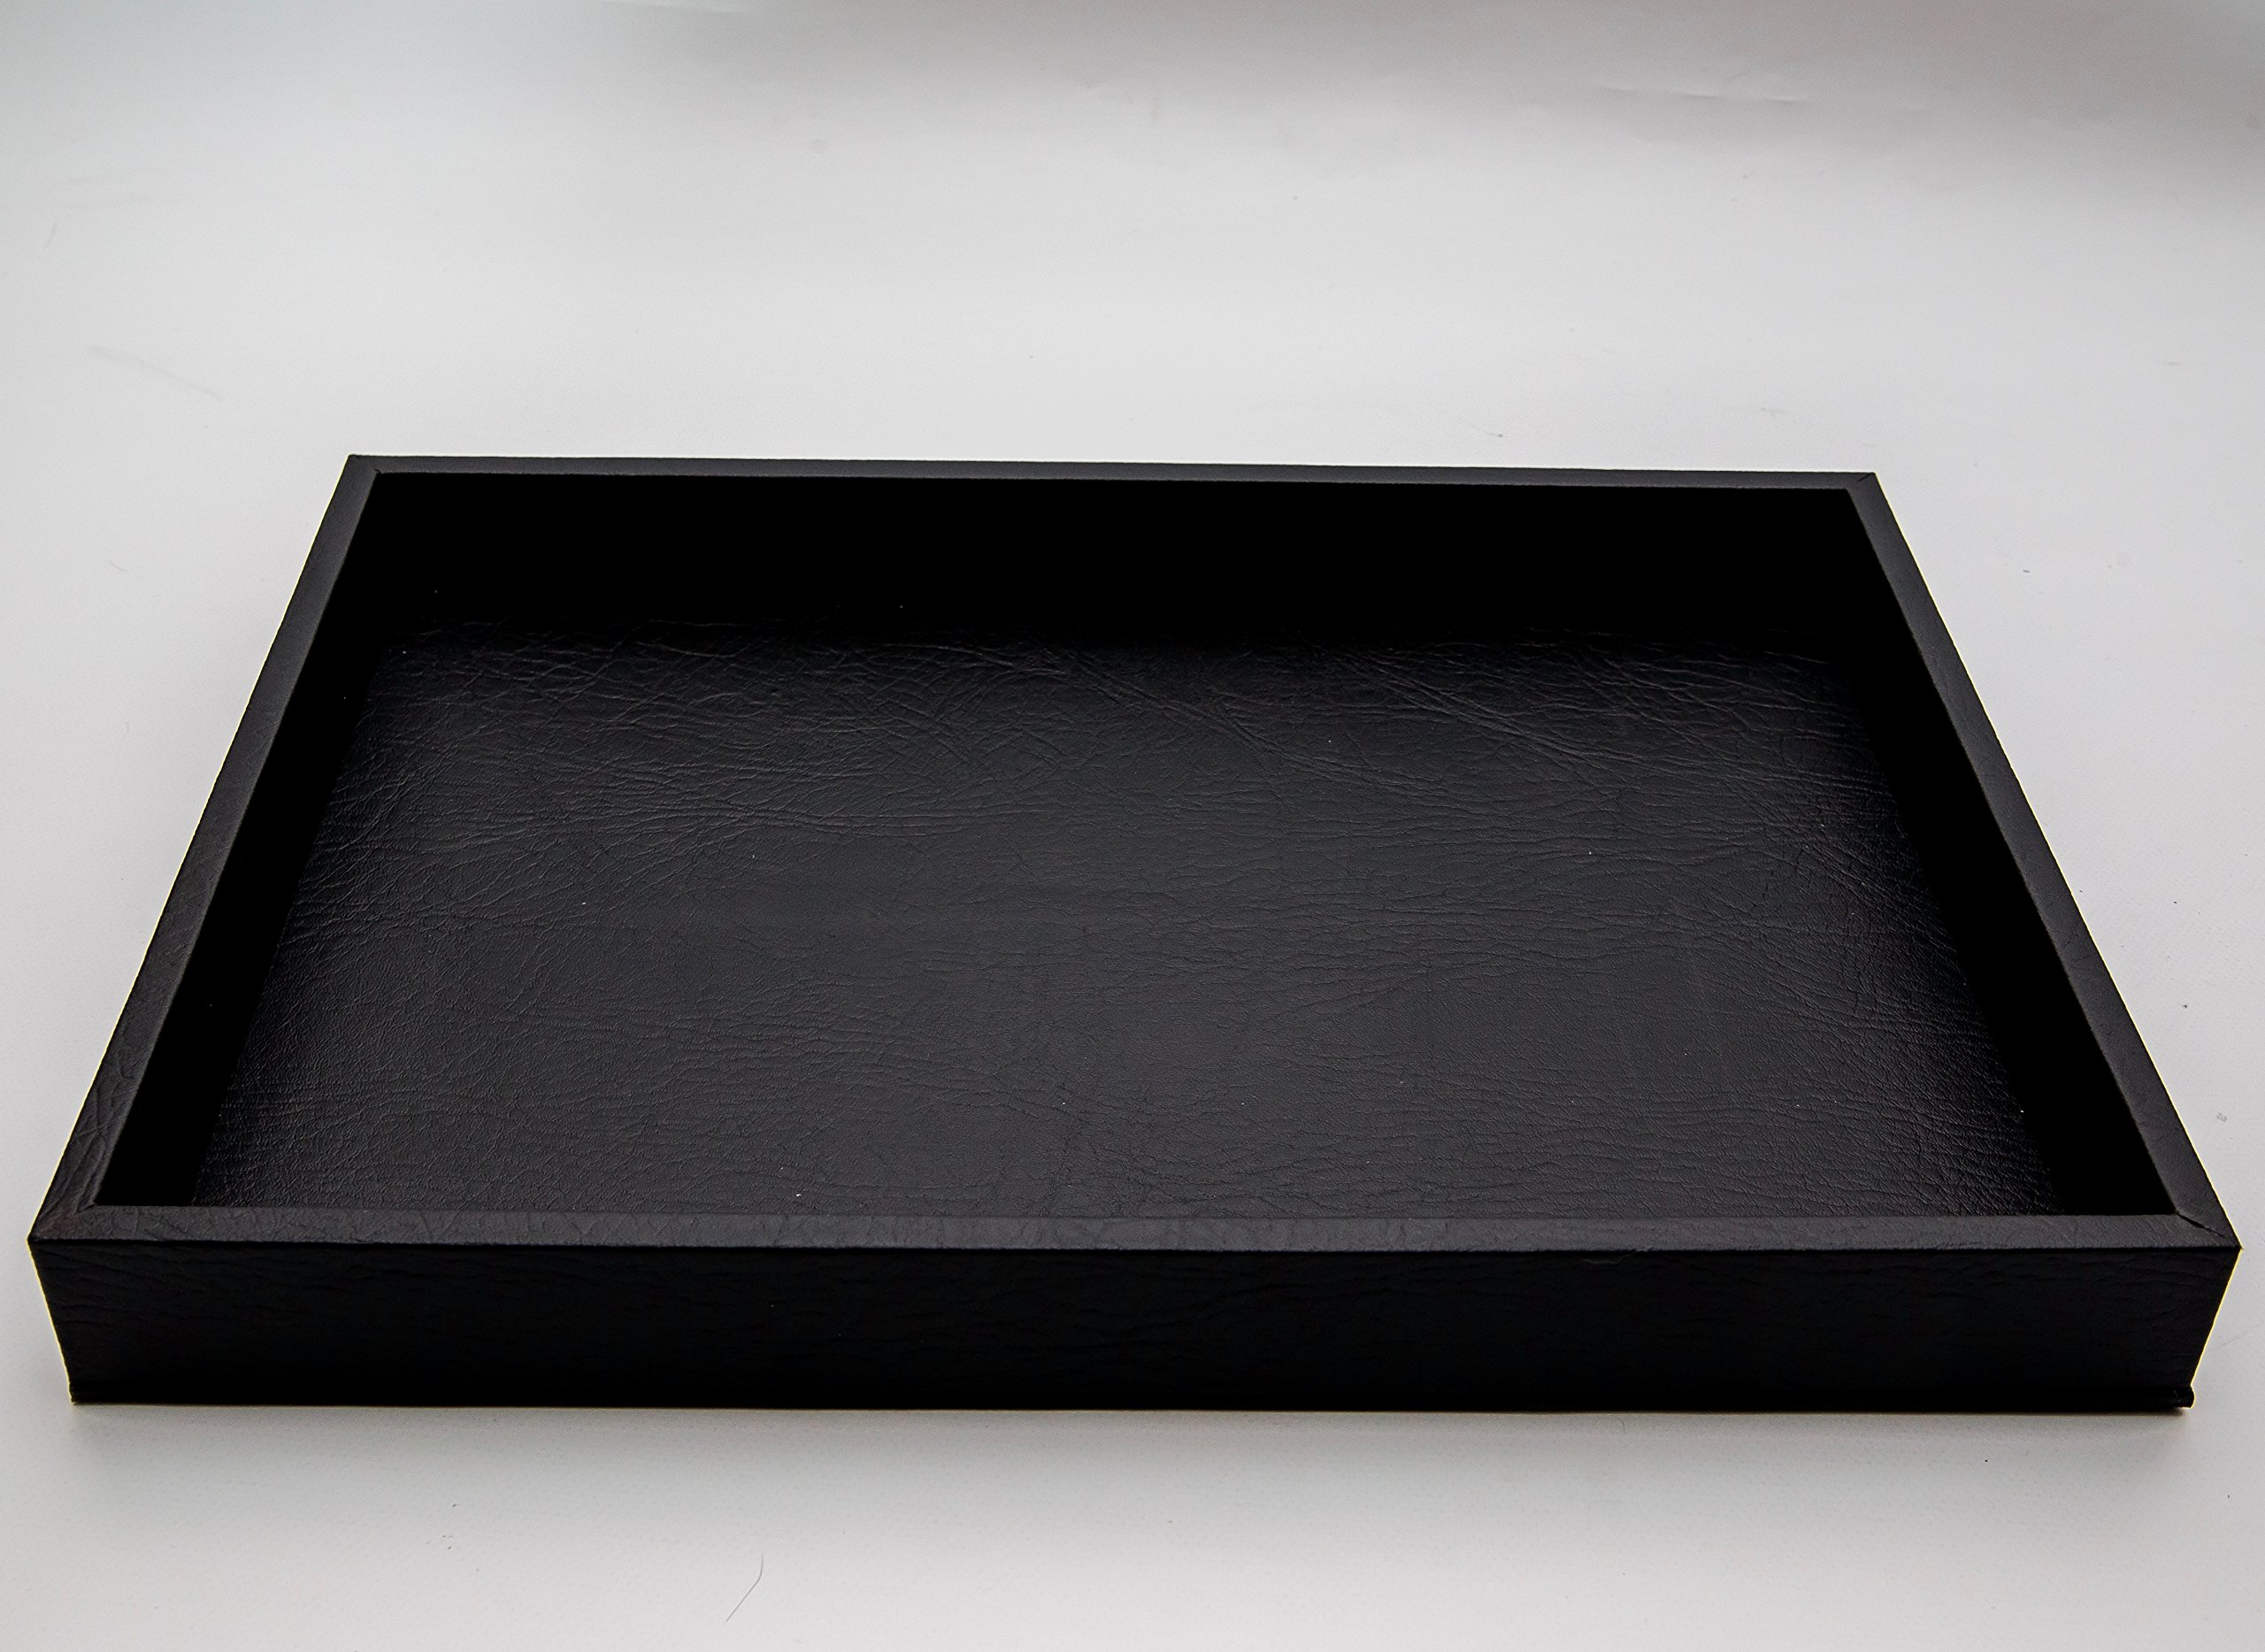 Leather Tray Made Of Wood - 18'' X 13'' - Black